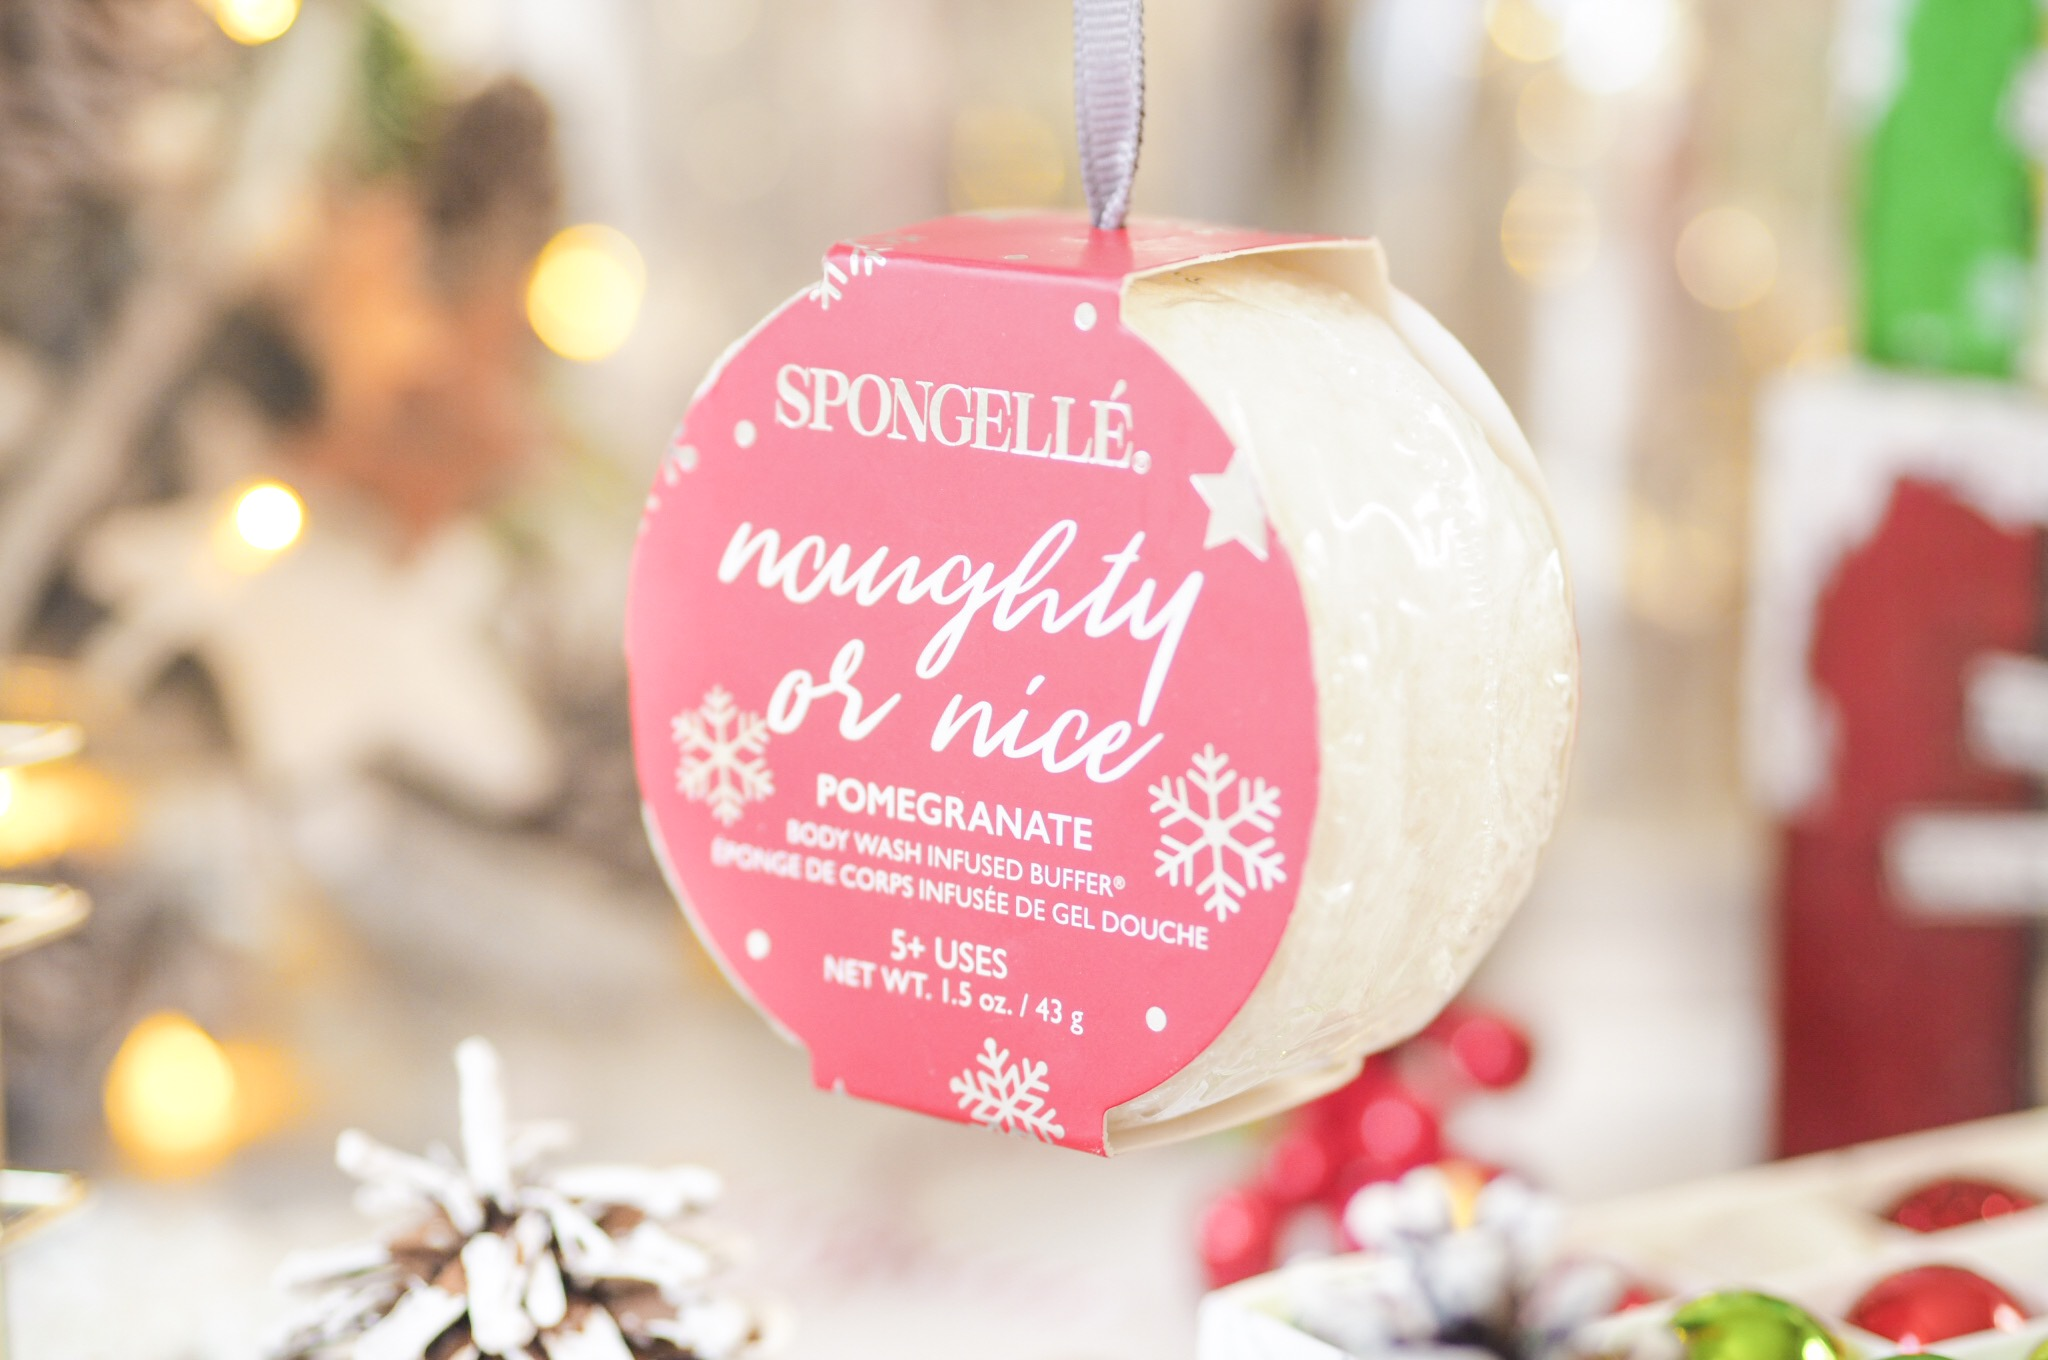 Spongelle Holiday Ornaments